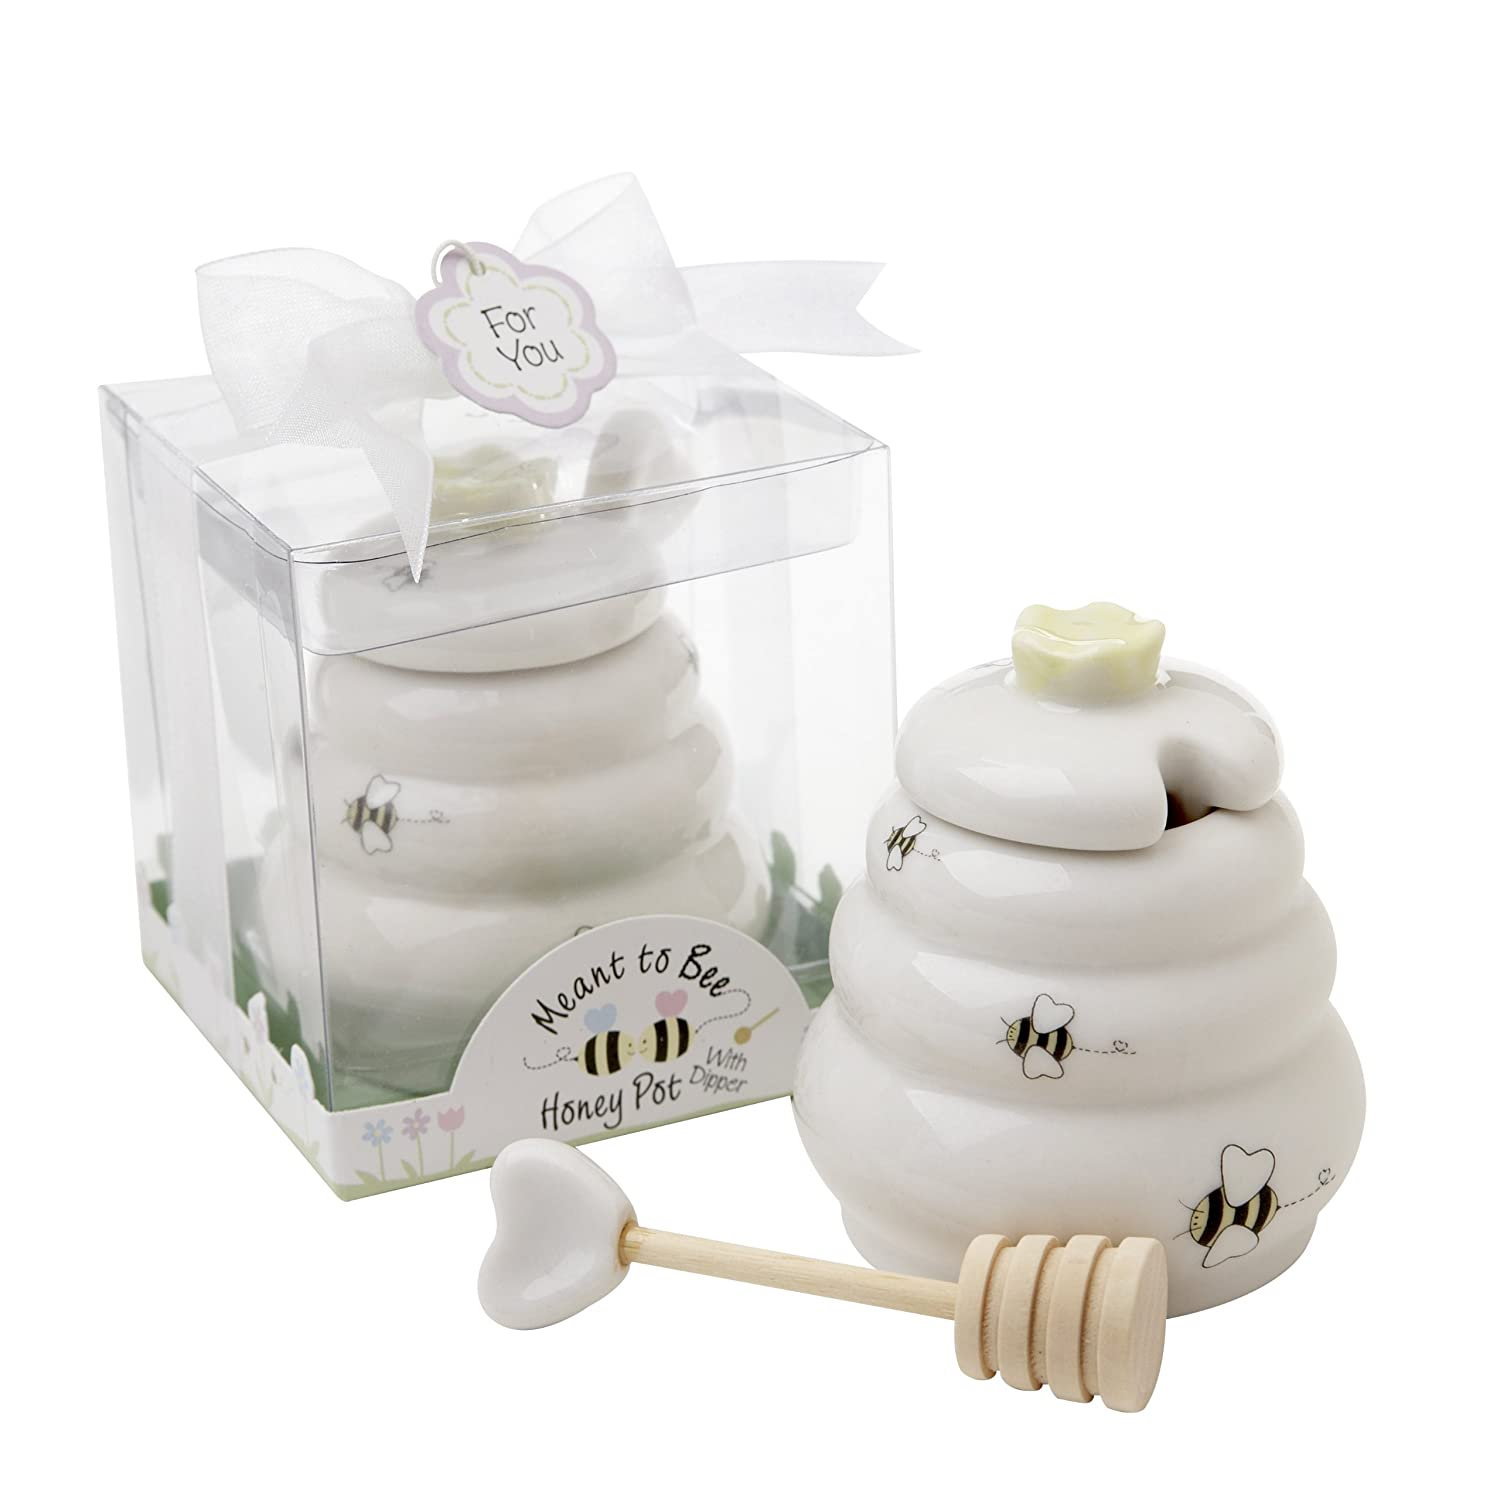 Amazon.com: Meant to Bee Ceramic Honey Pot with Wooden Dipper: Home ...